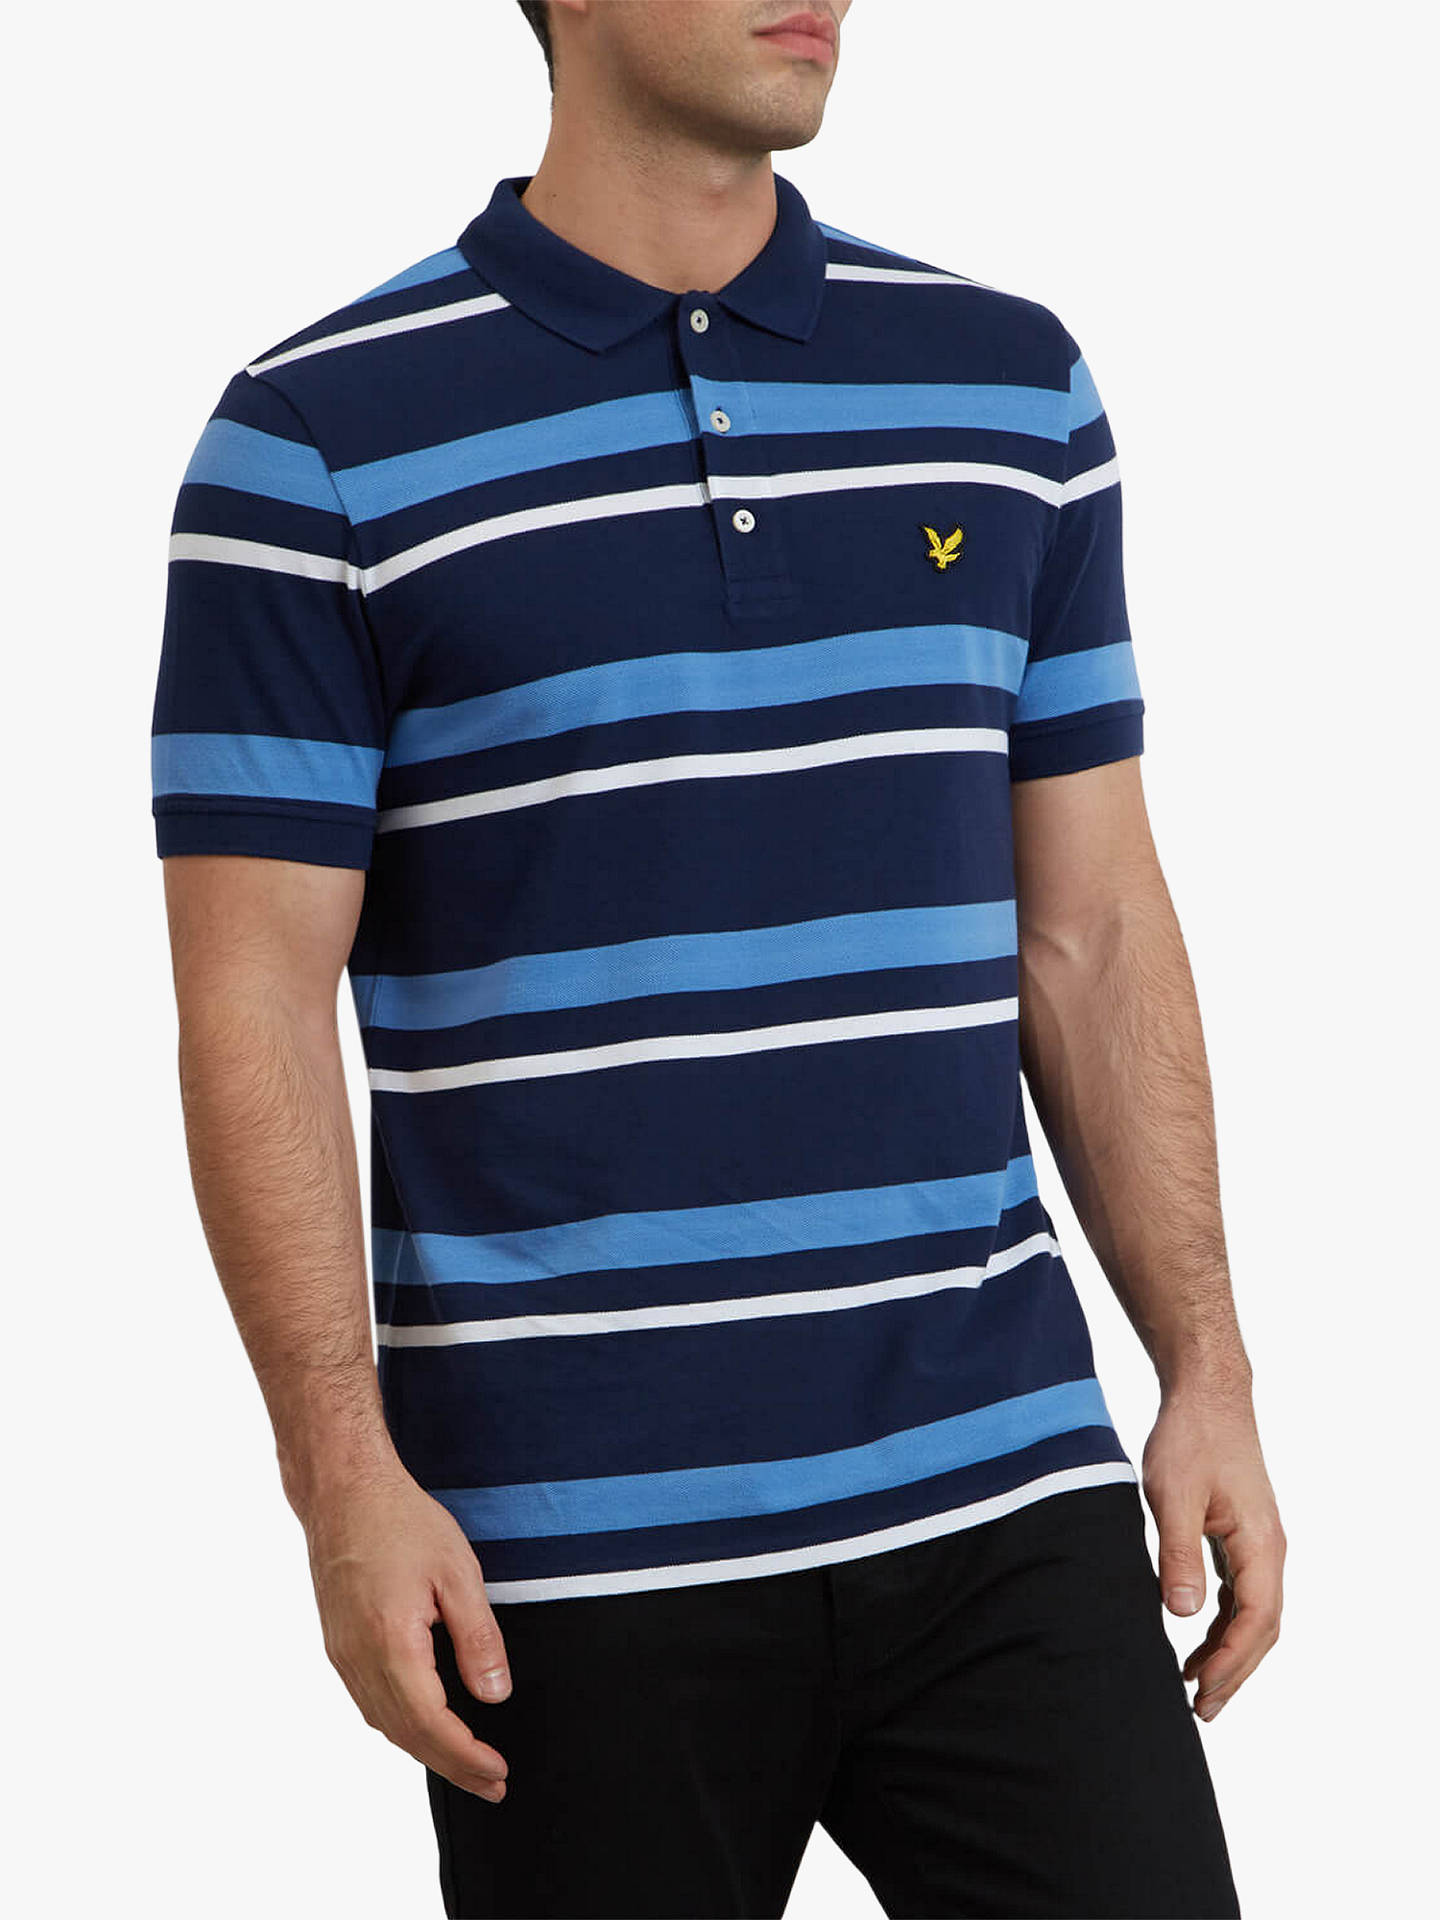 01cd7a18 Buy Lyle & Scott Short Sleeve Stripe Polo Shirt, Navy, M Online at  johnlewis ...